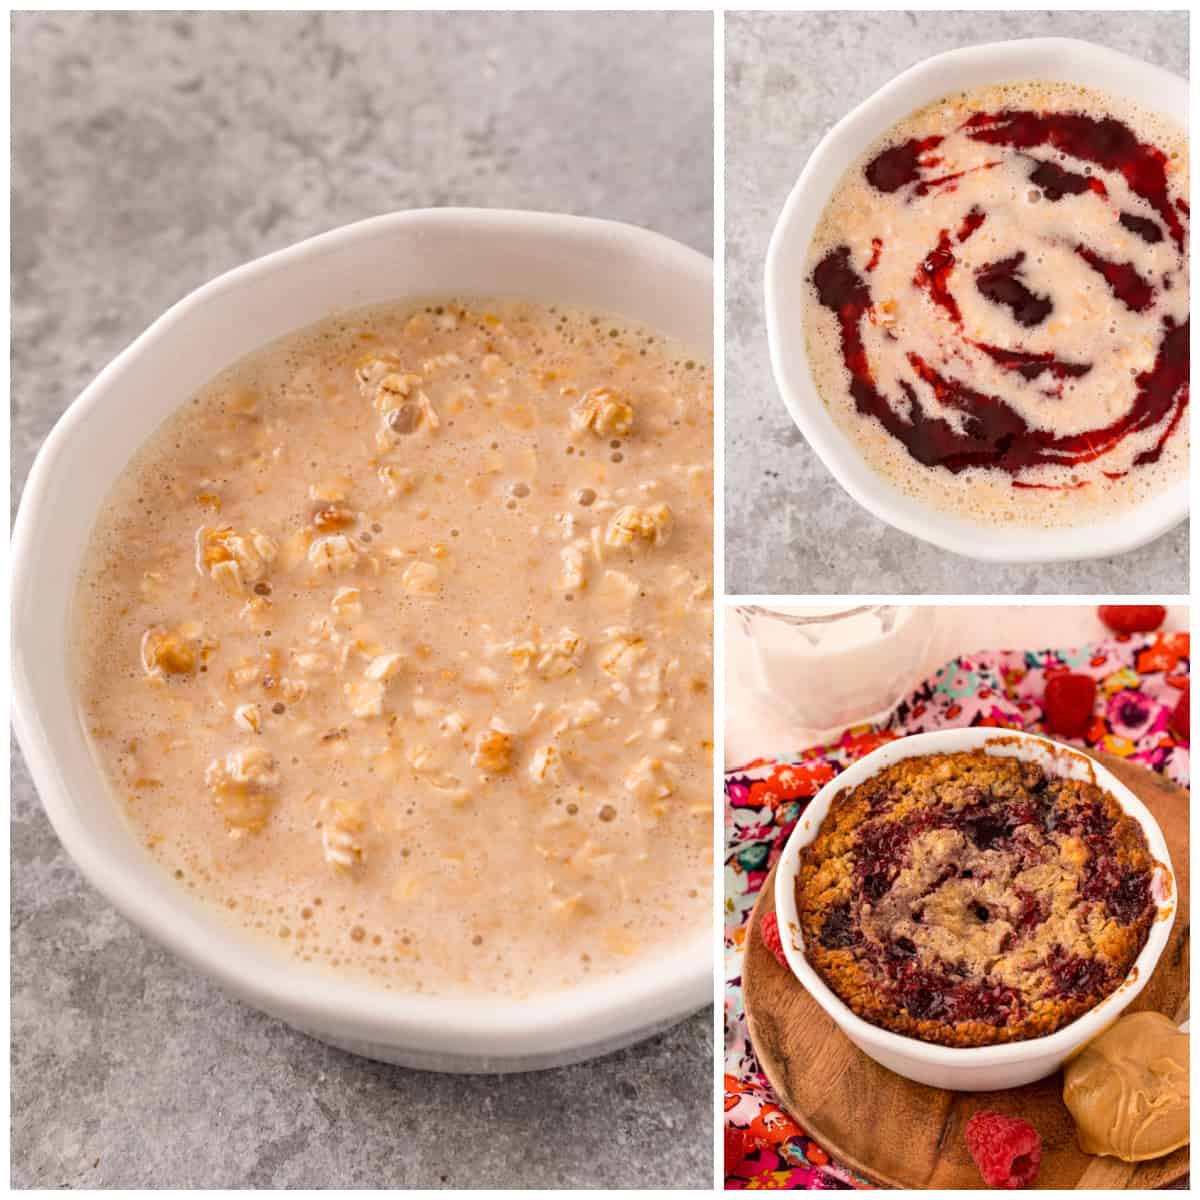 Step by step photos on how to make Peanut Butter & Jelly Baked Oats